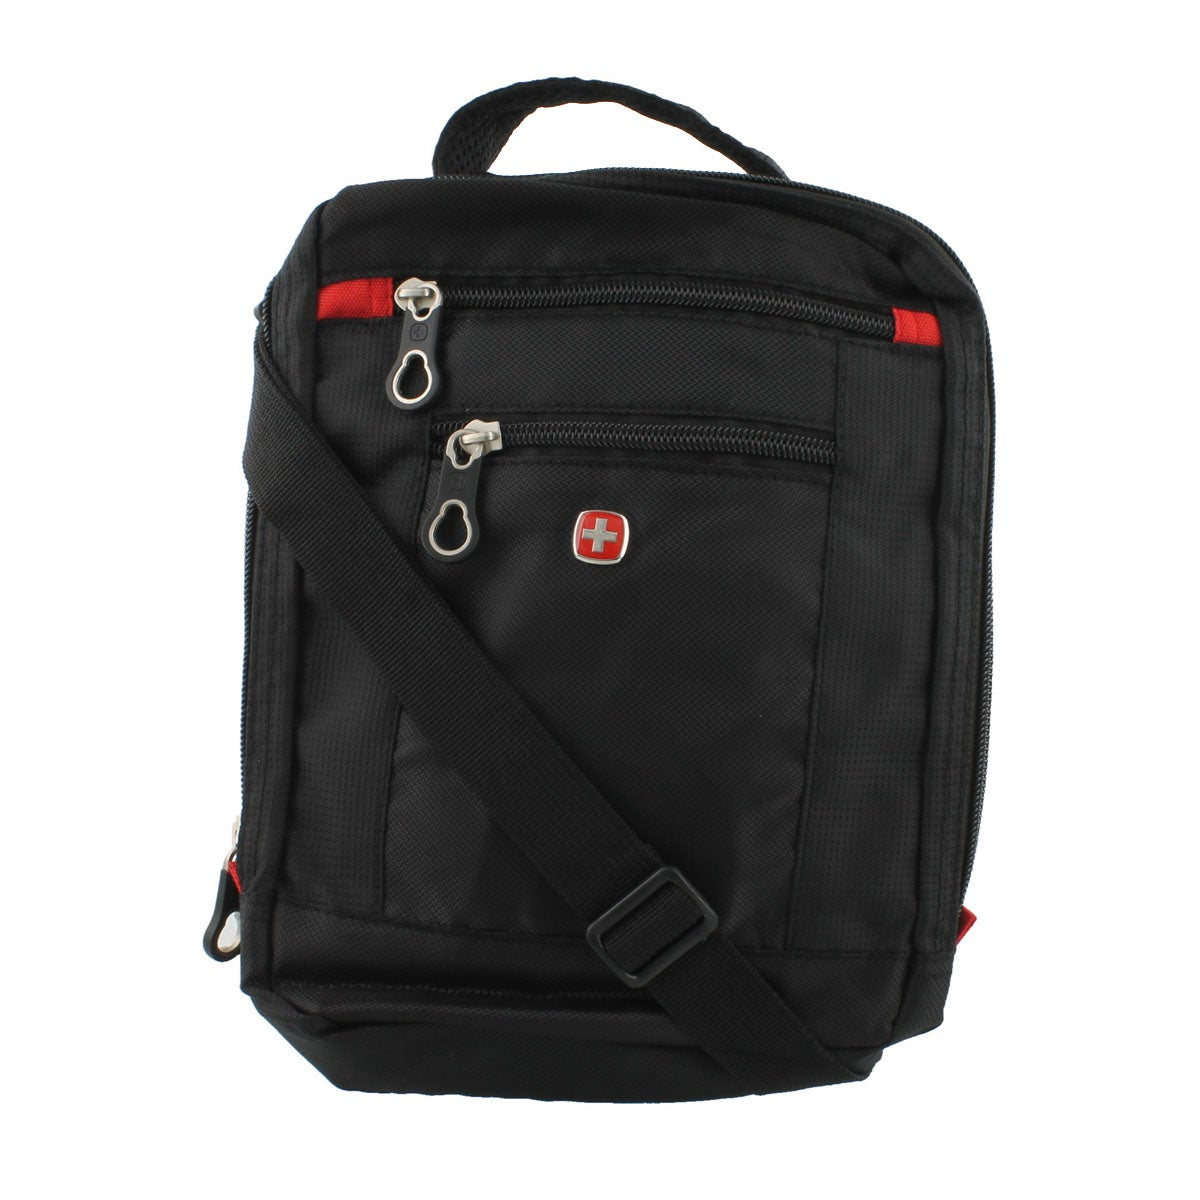 Mns Swiss Gear blk vertical boarding bag